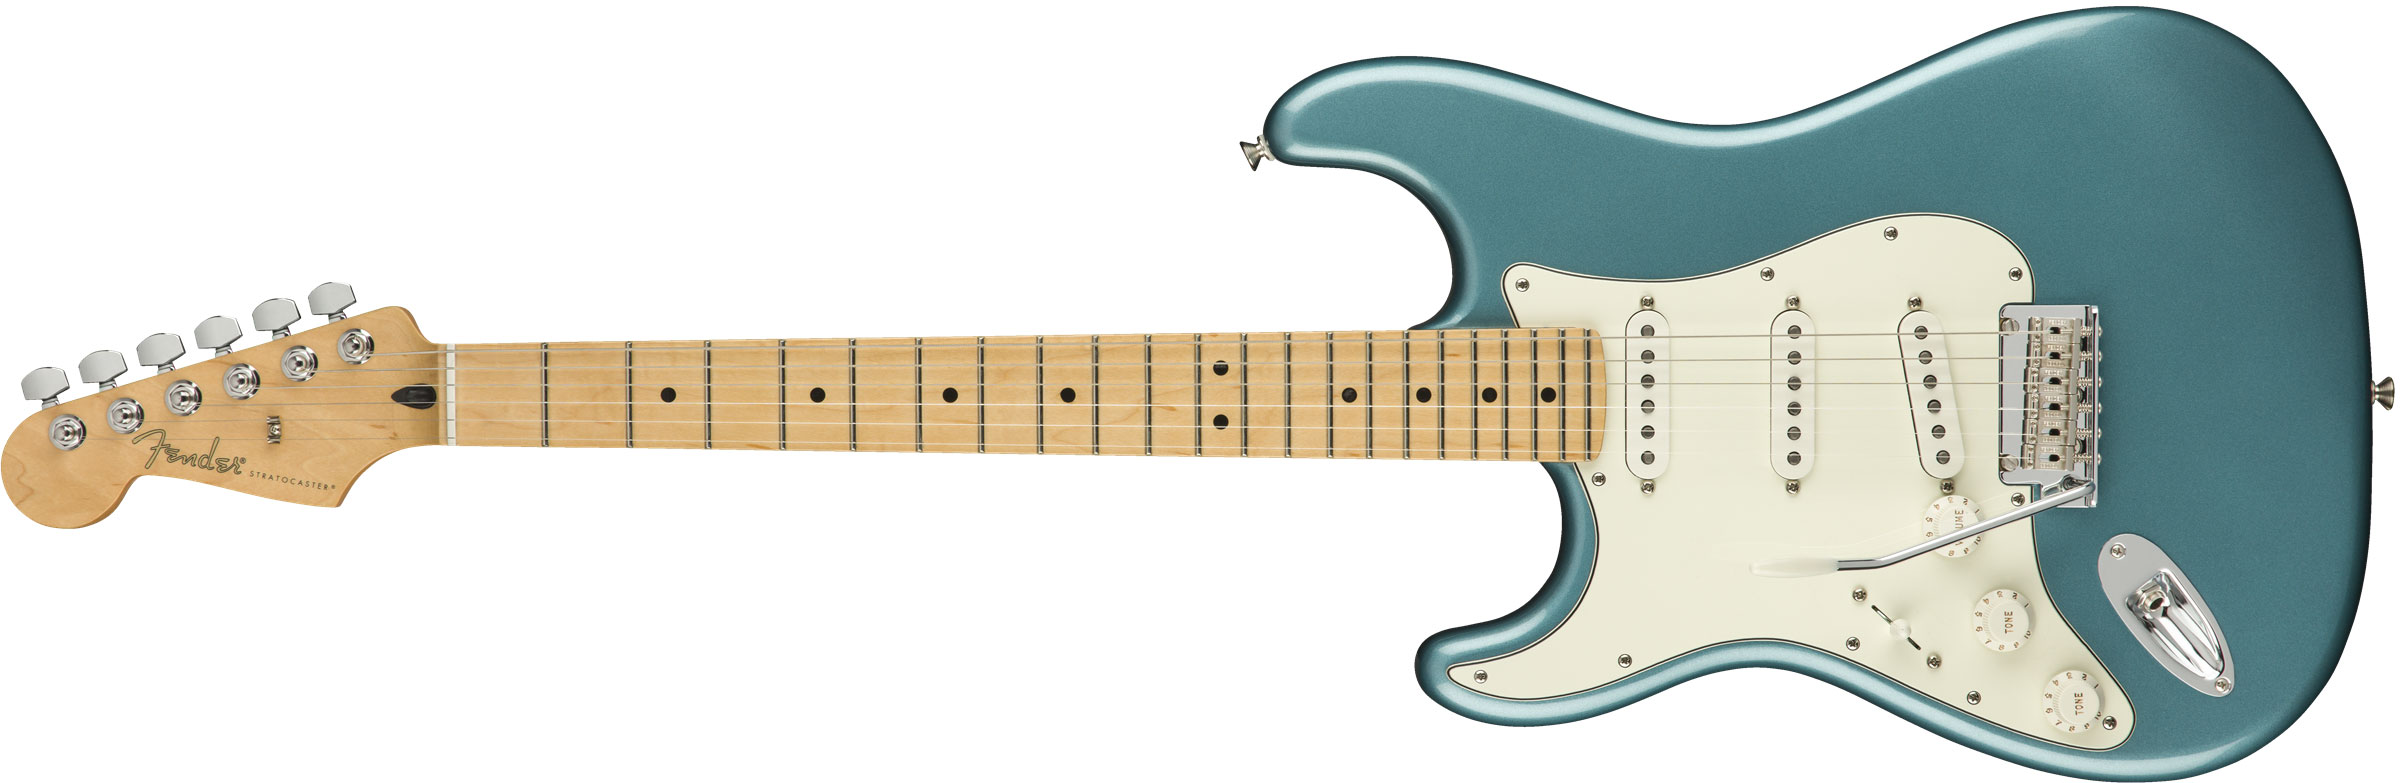 GUITARRA FENDER PLAYER STRATOCASTER LH MN 014-4512-513 TIDEPOOL